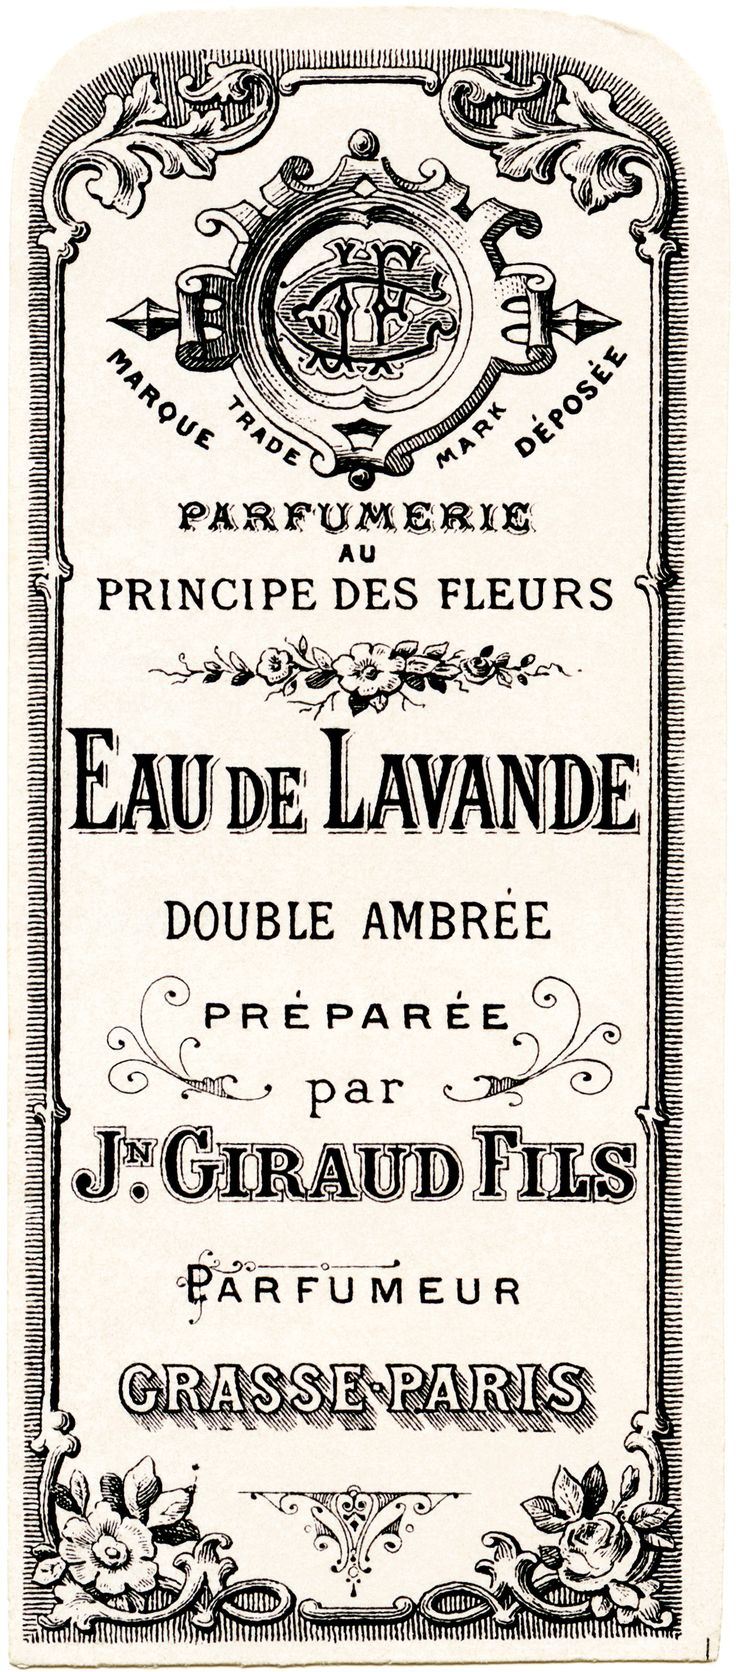 French perfume label, Jn Giraud Fils, vintage French ephemera, eau de lavande, lavender water perfume label, free vintage label graphic great for image transfer! Print in reverse on a laser printer and use Artisan Enhancements Transfer Gel!